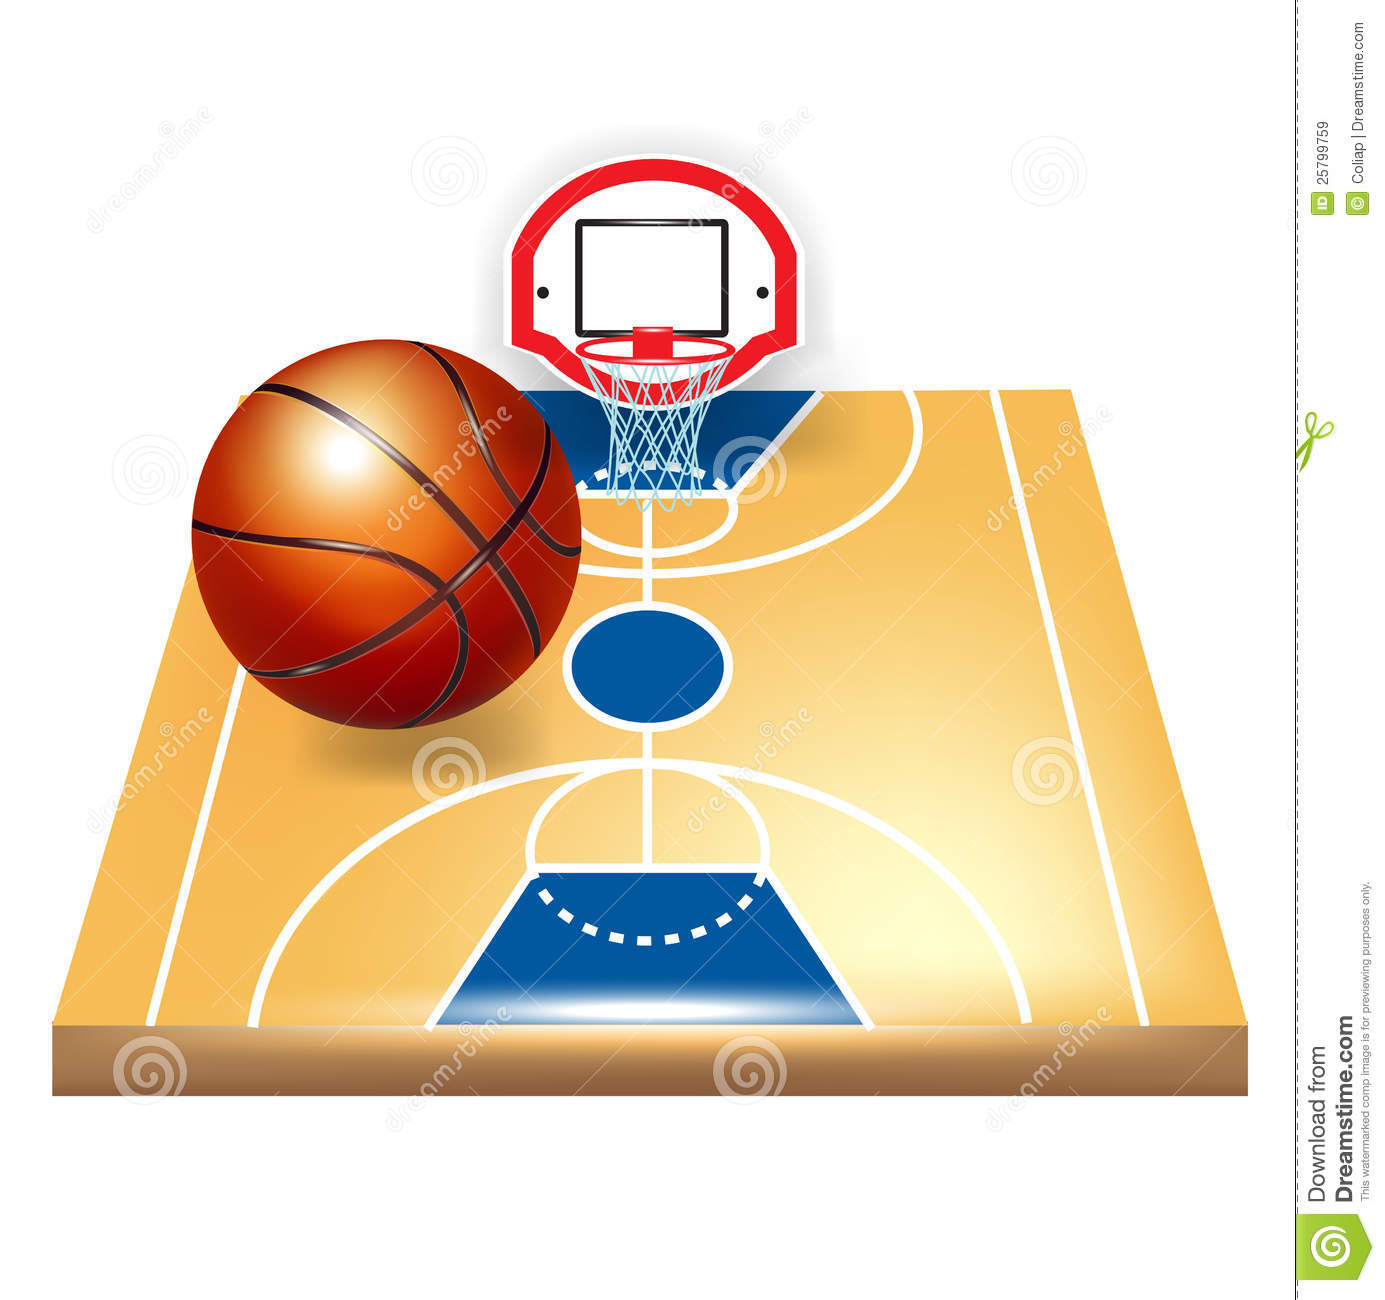 Basketball court and ball royalty free stock images for Free inside basketball courts